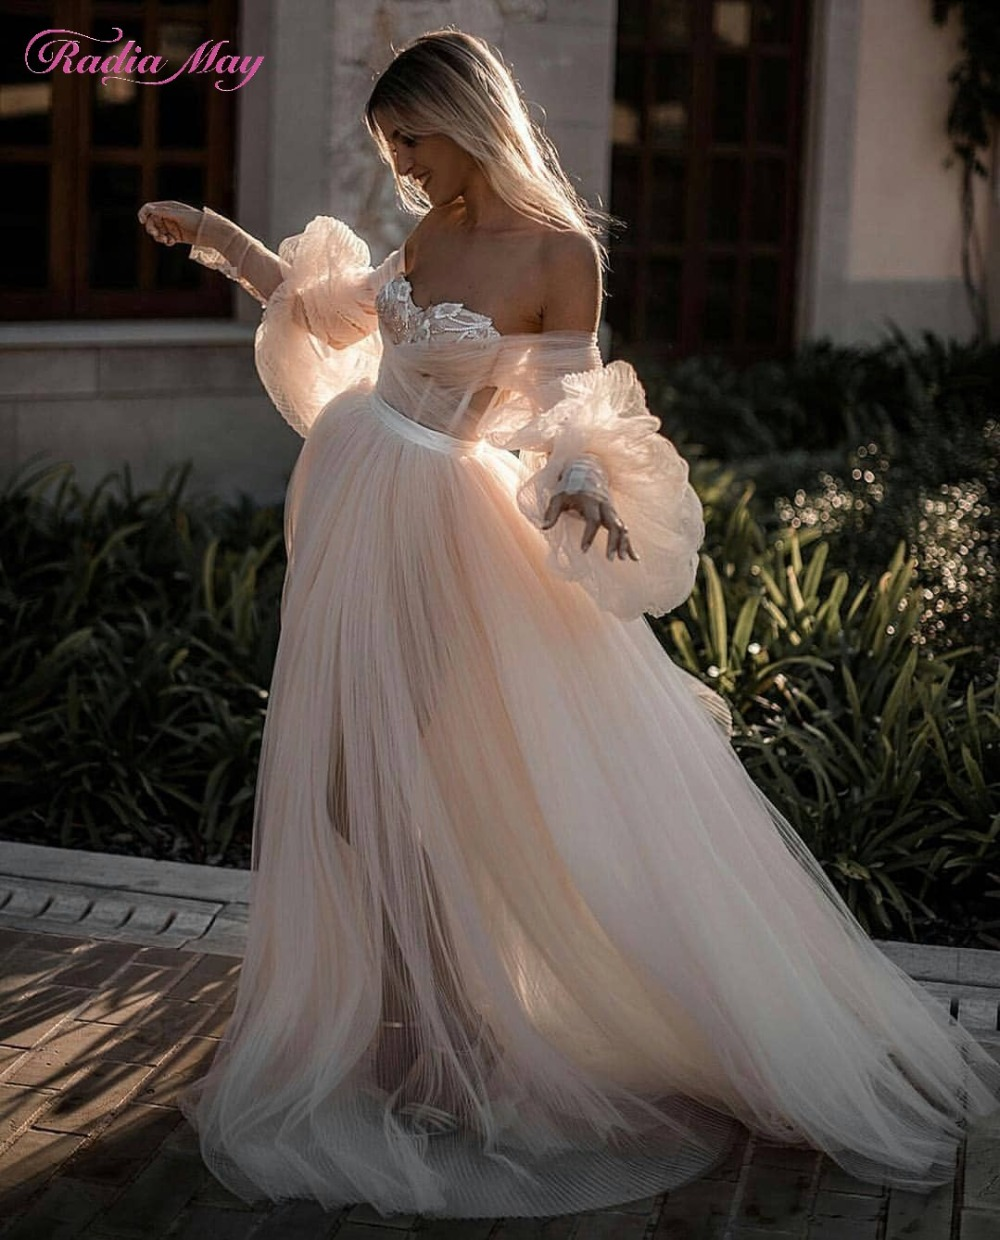 Vintage Lace Long Sleeves Boho Beach Wedding Dress 2019 Off Shoulder Sweetheart Champagne Tulle Bohemian Country